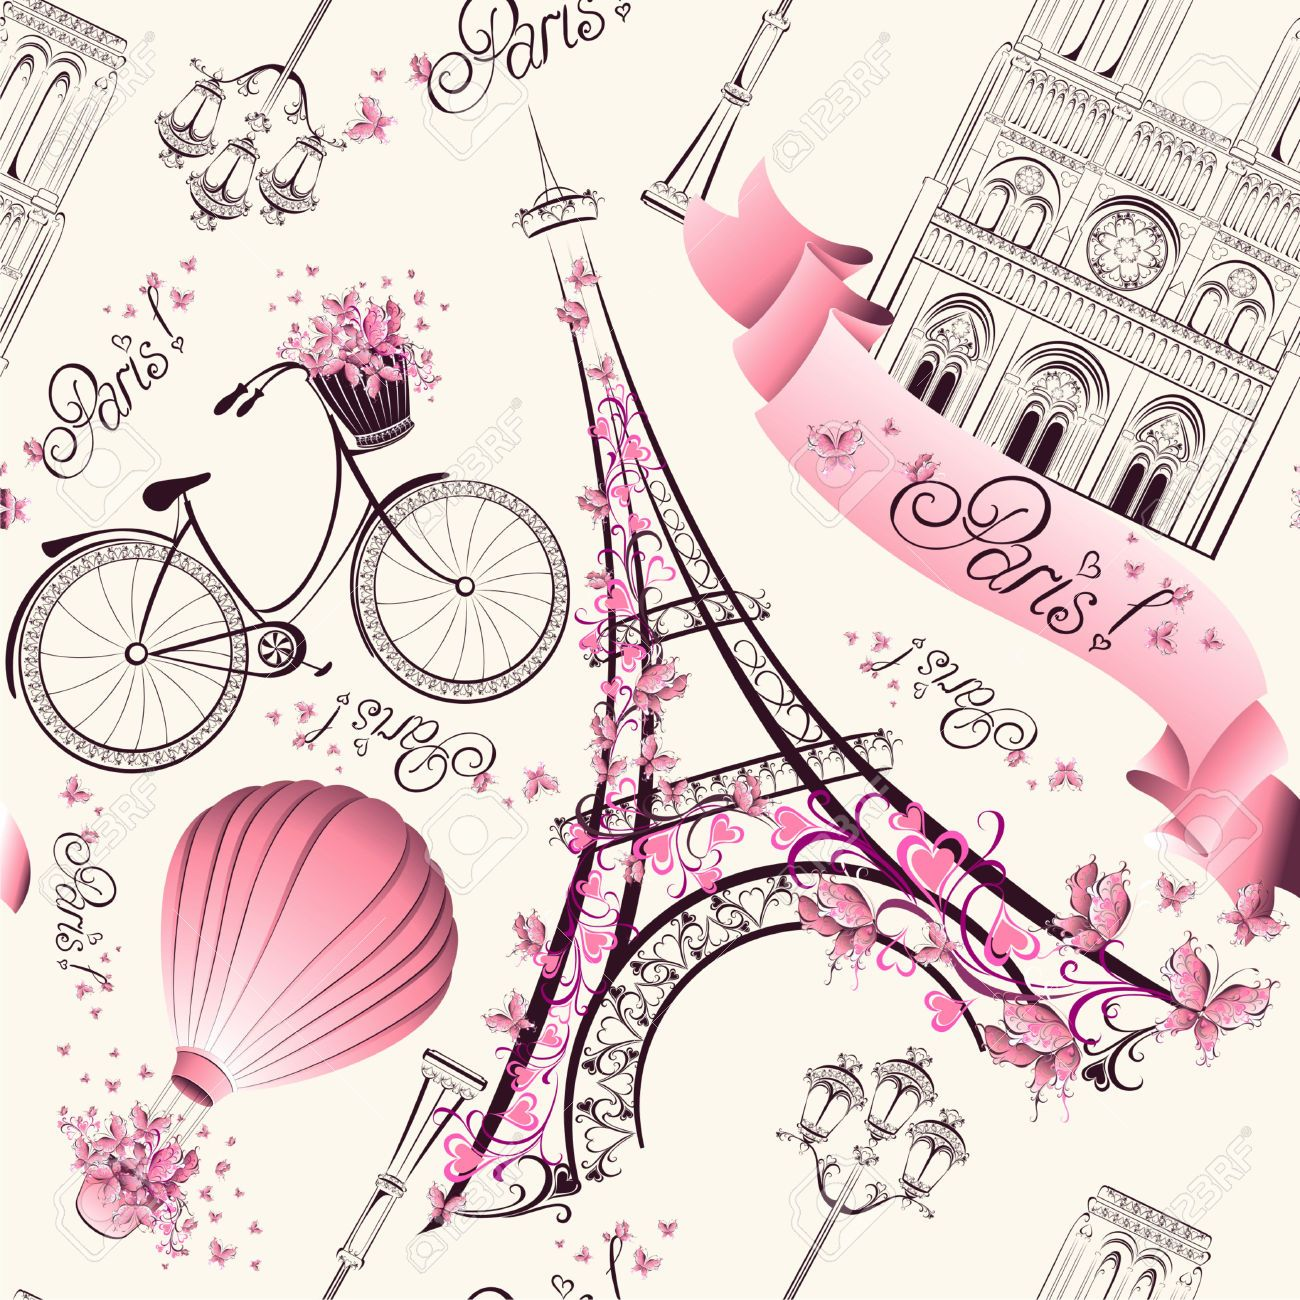 April in paris clipart image stock Paris Cliparts, Stock Vector And Royalty Free Paris Illustrations ... image stock